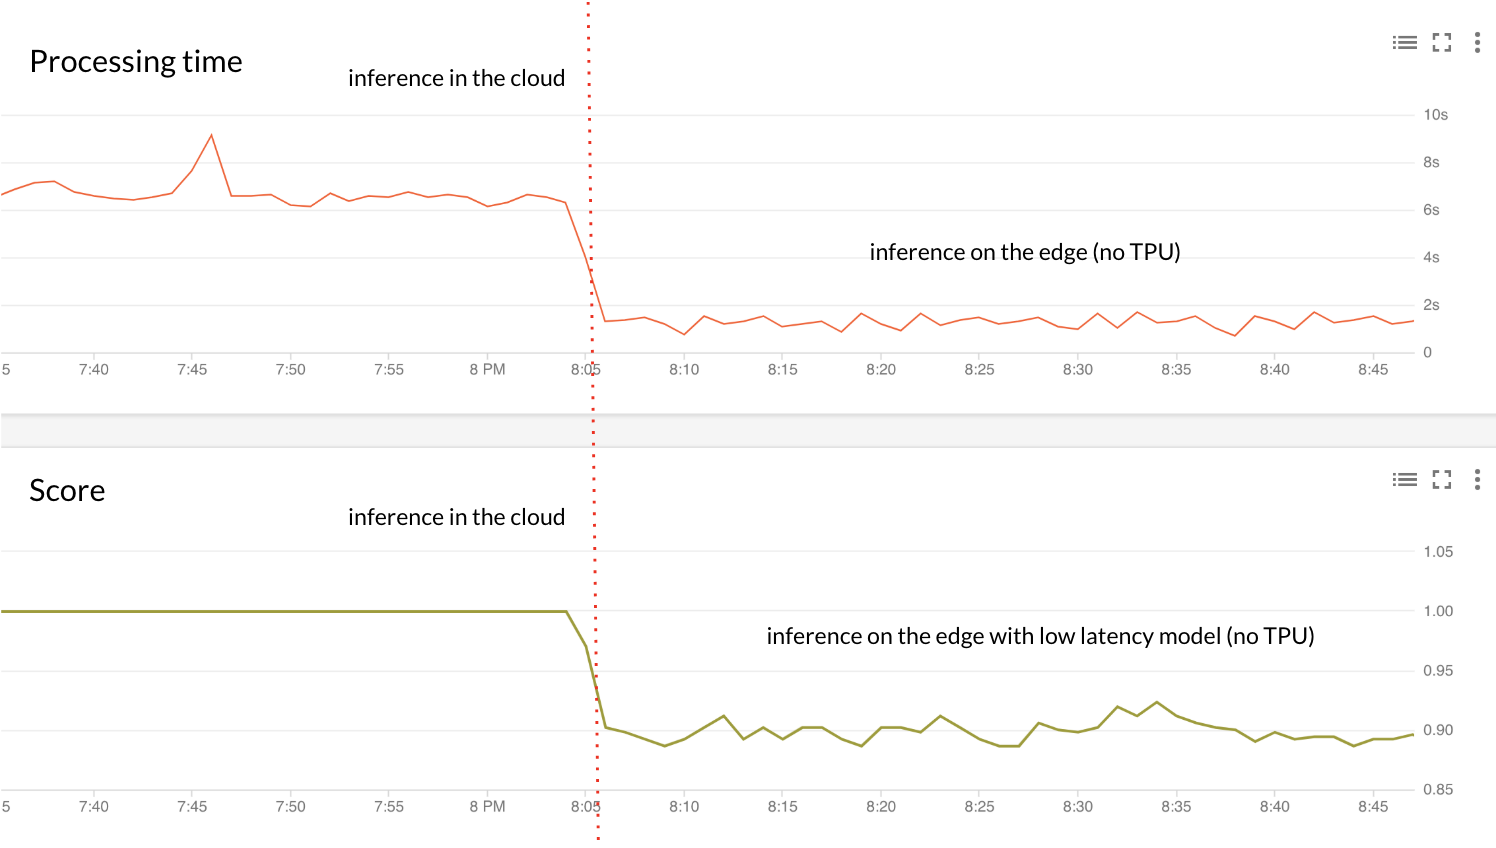 Processing time and score for cloud mode versus edge mode